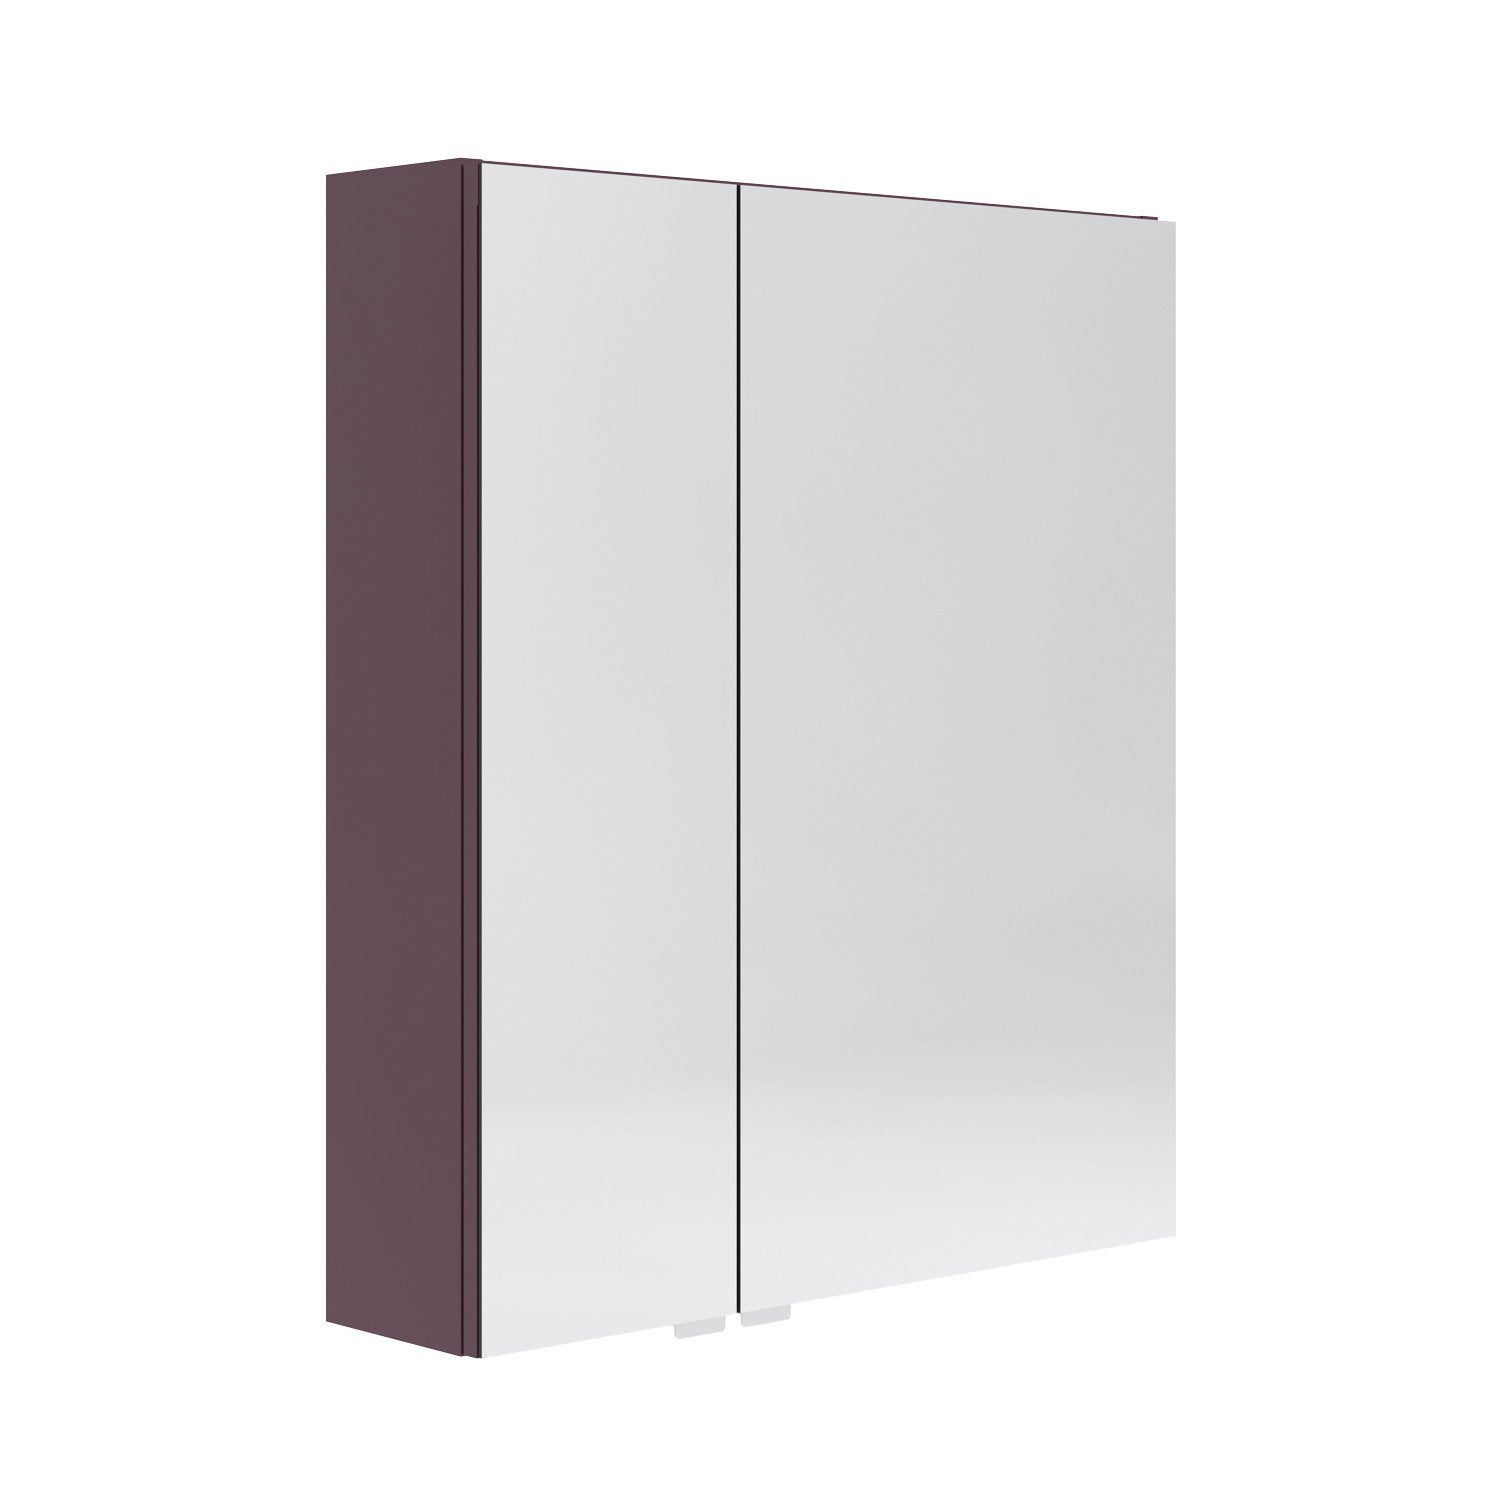 armoire de toilette l 60 cm aubergine opale leroy merlin. Black Bedroom Furniture Sets. Home Design Ideas